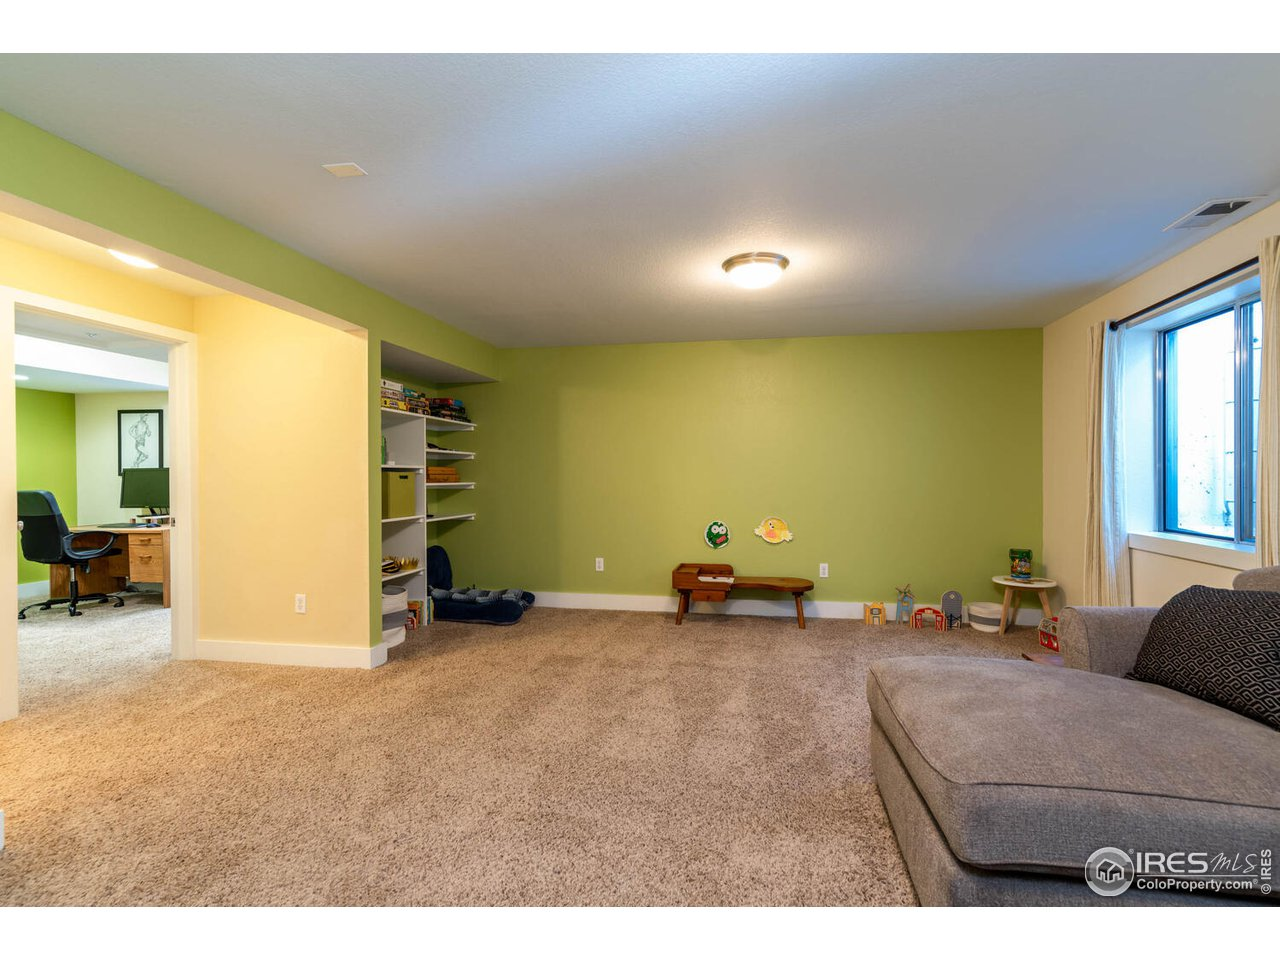 Large rec/room family room with egress window